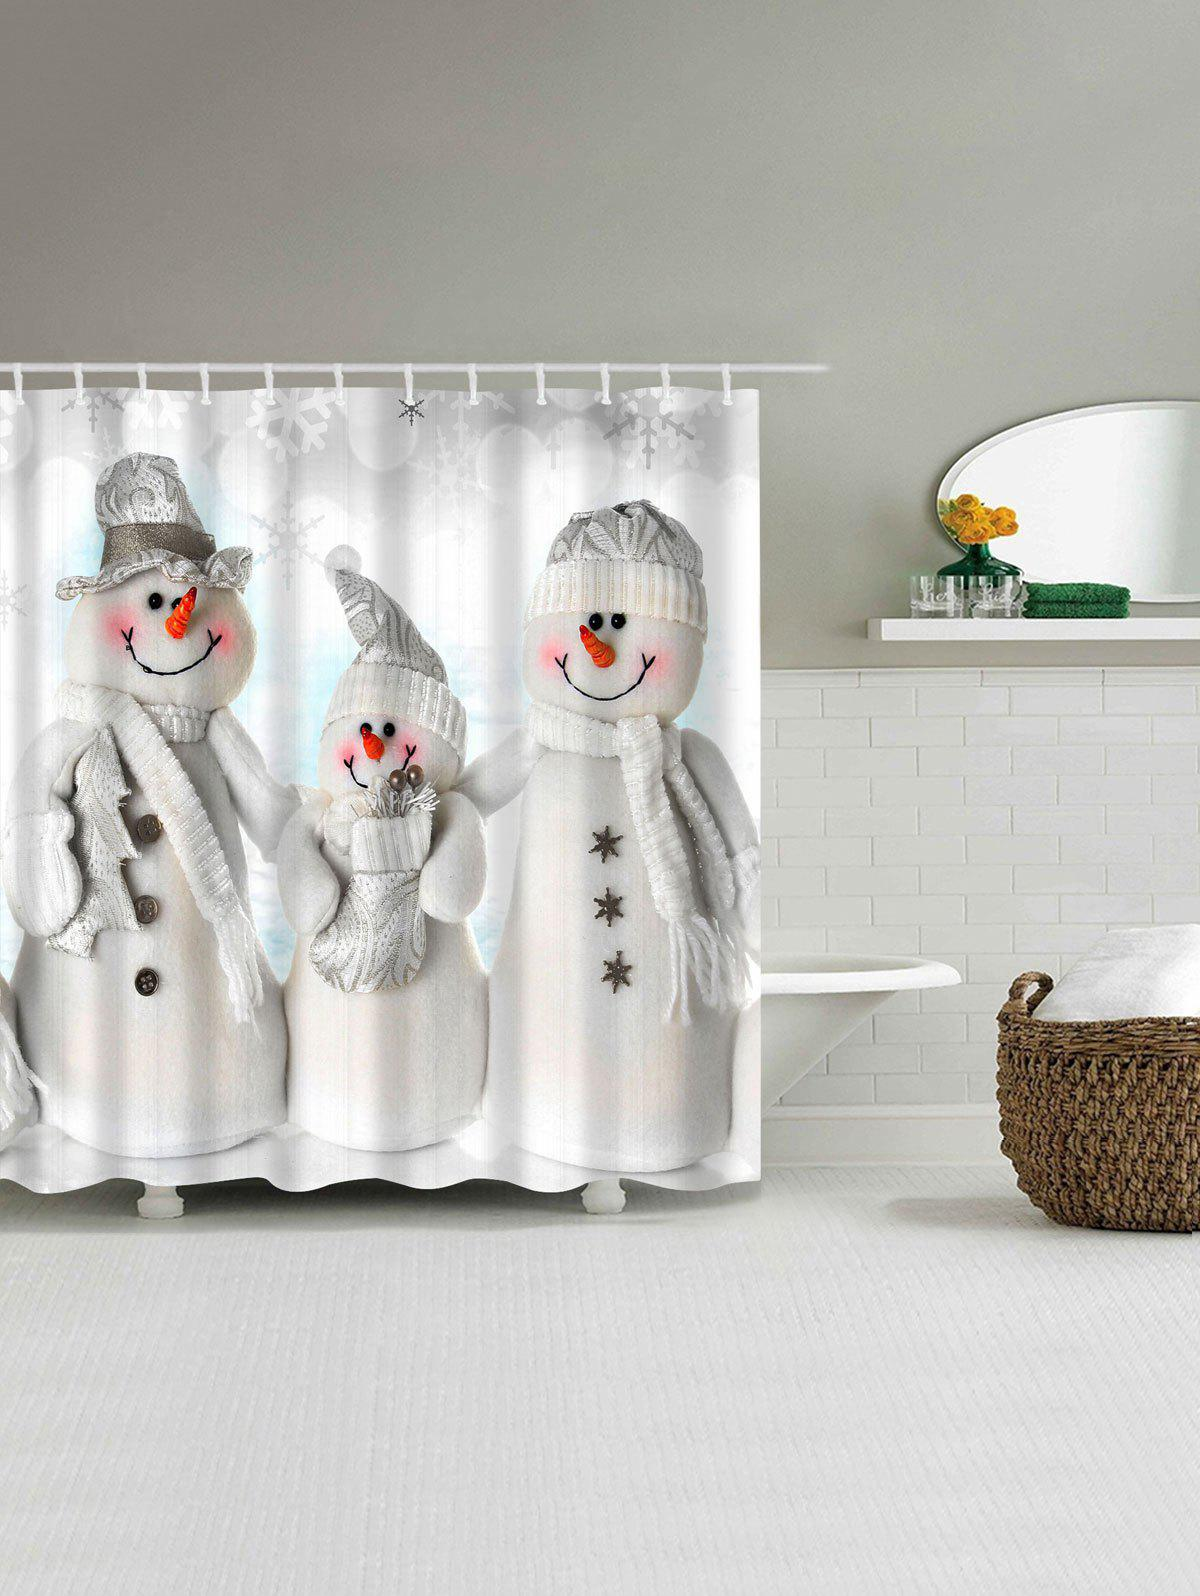 2018 Waterproof Polyester Snowman Christmas Shower Curtain Grey White W Inch L Inch In Shower